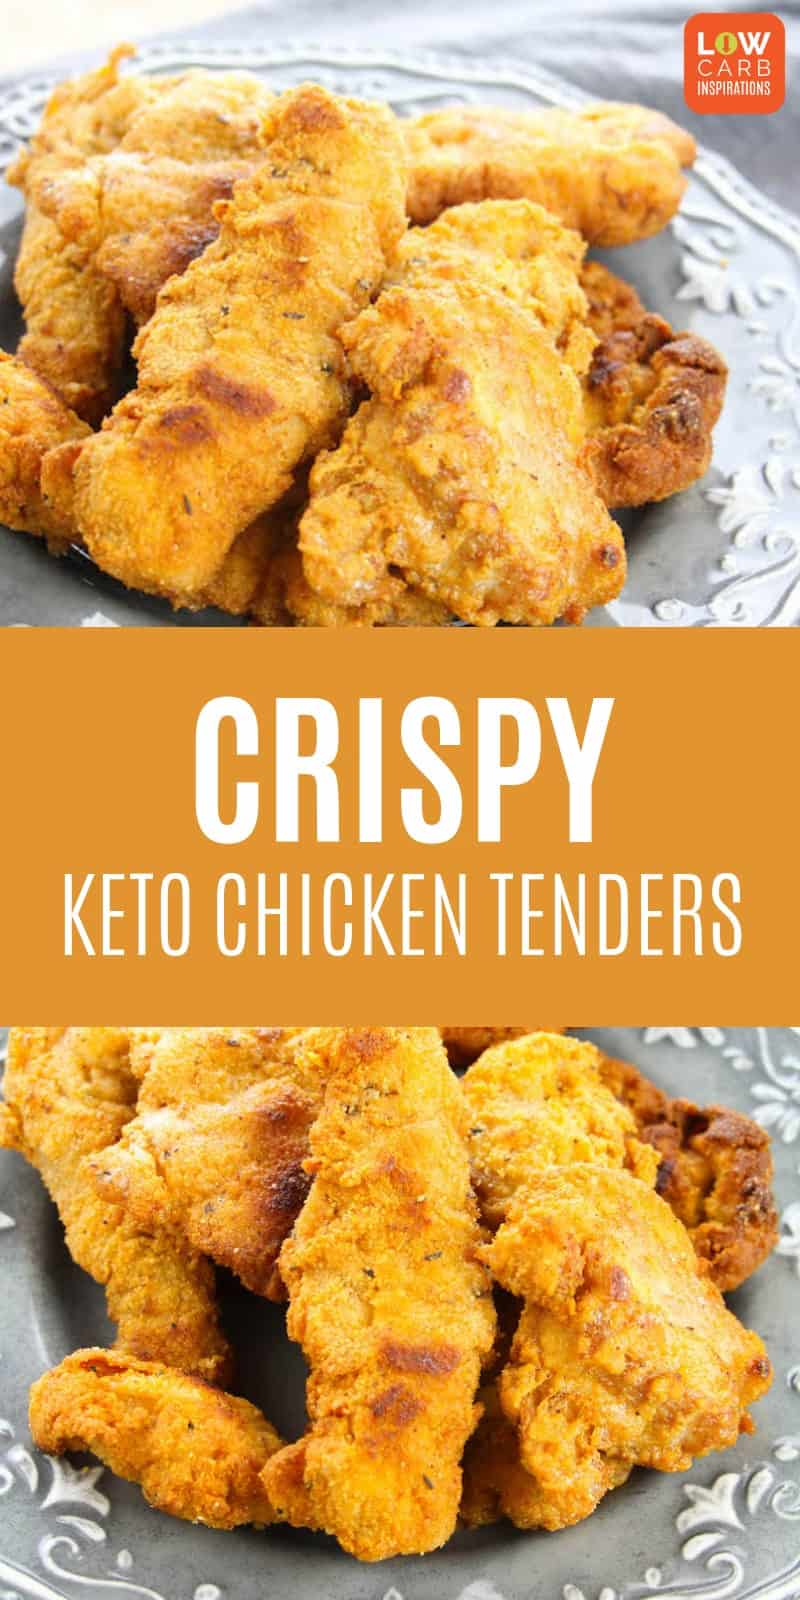 Keto Fried Chicken that's nice and crispy!